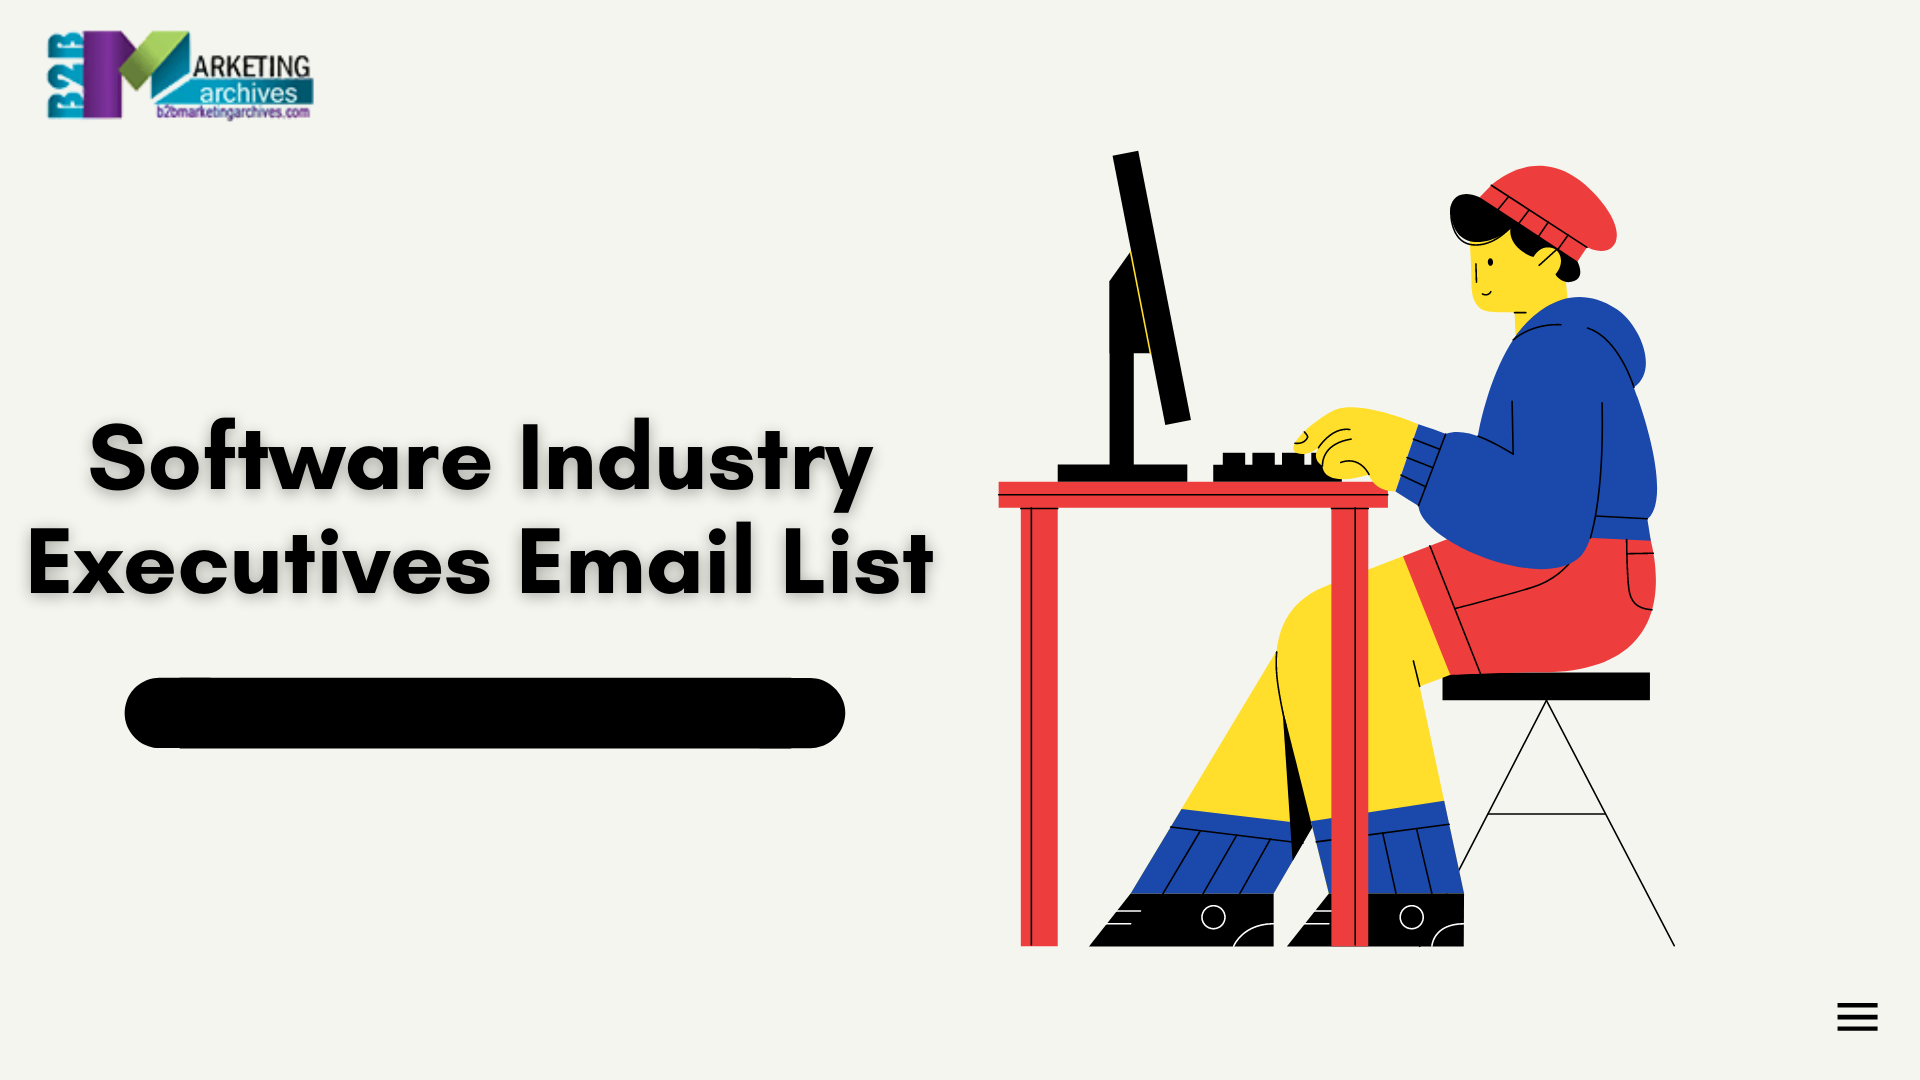 Software Industry Executives Email List